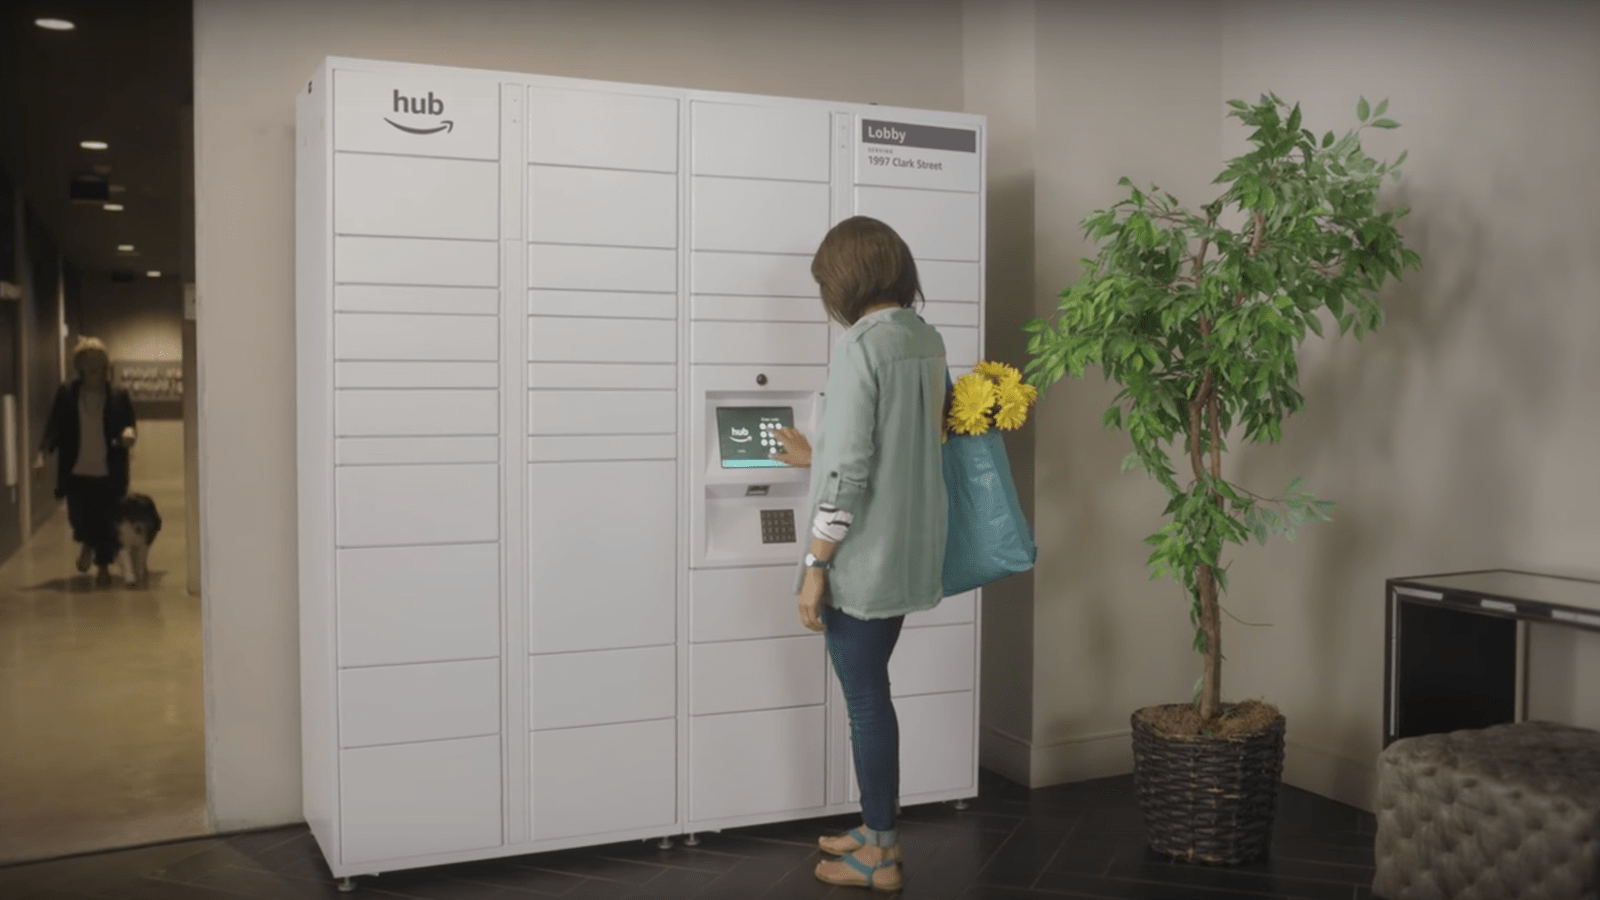 Amazon Wants to Install Their Slick Mailboxes in Your